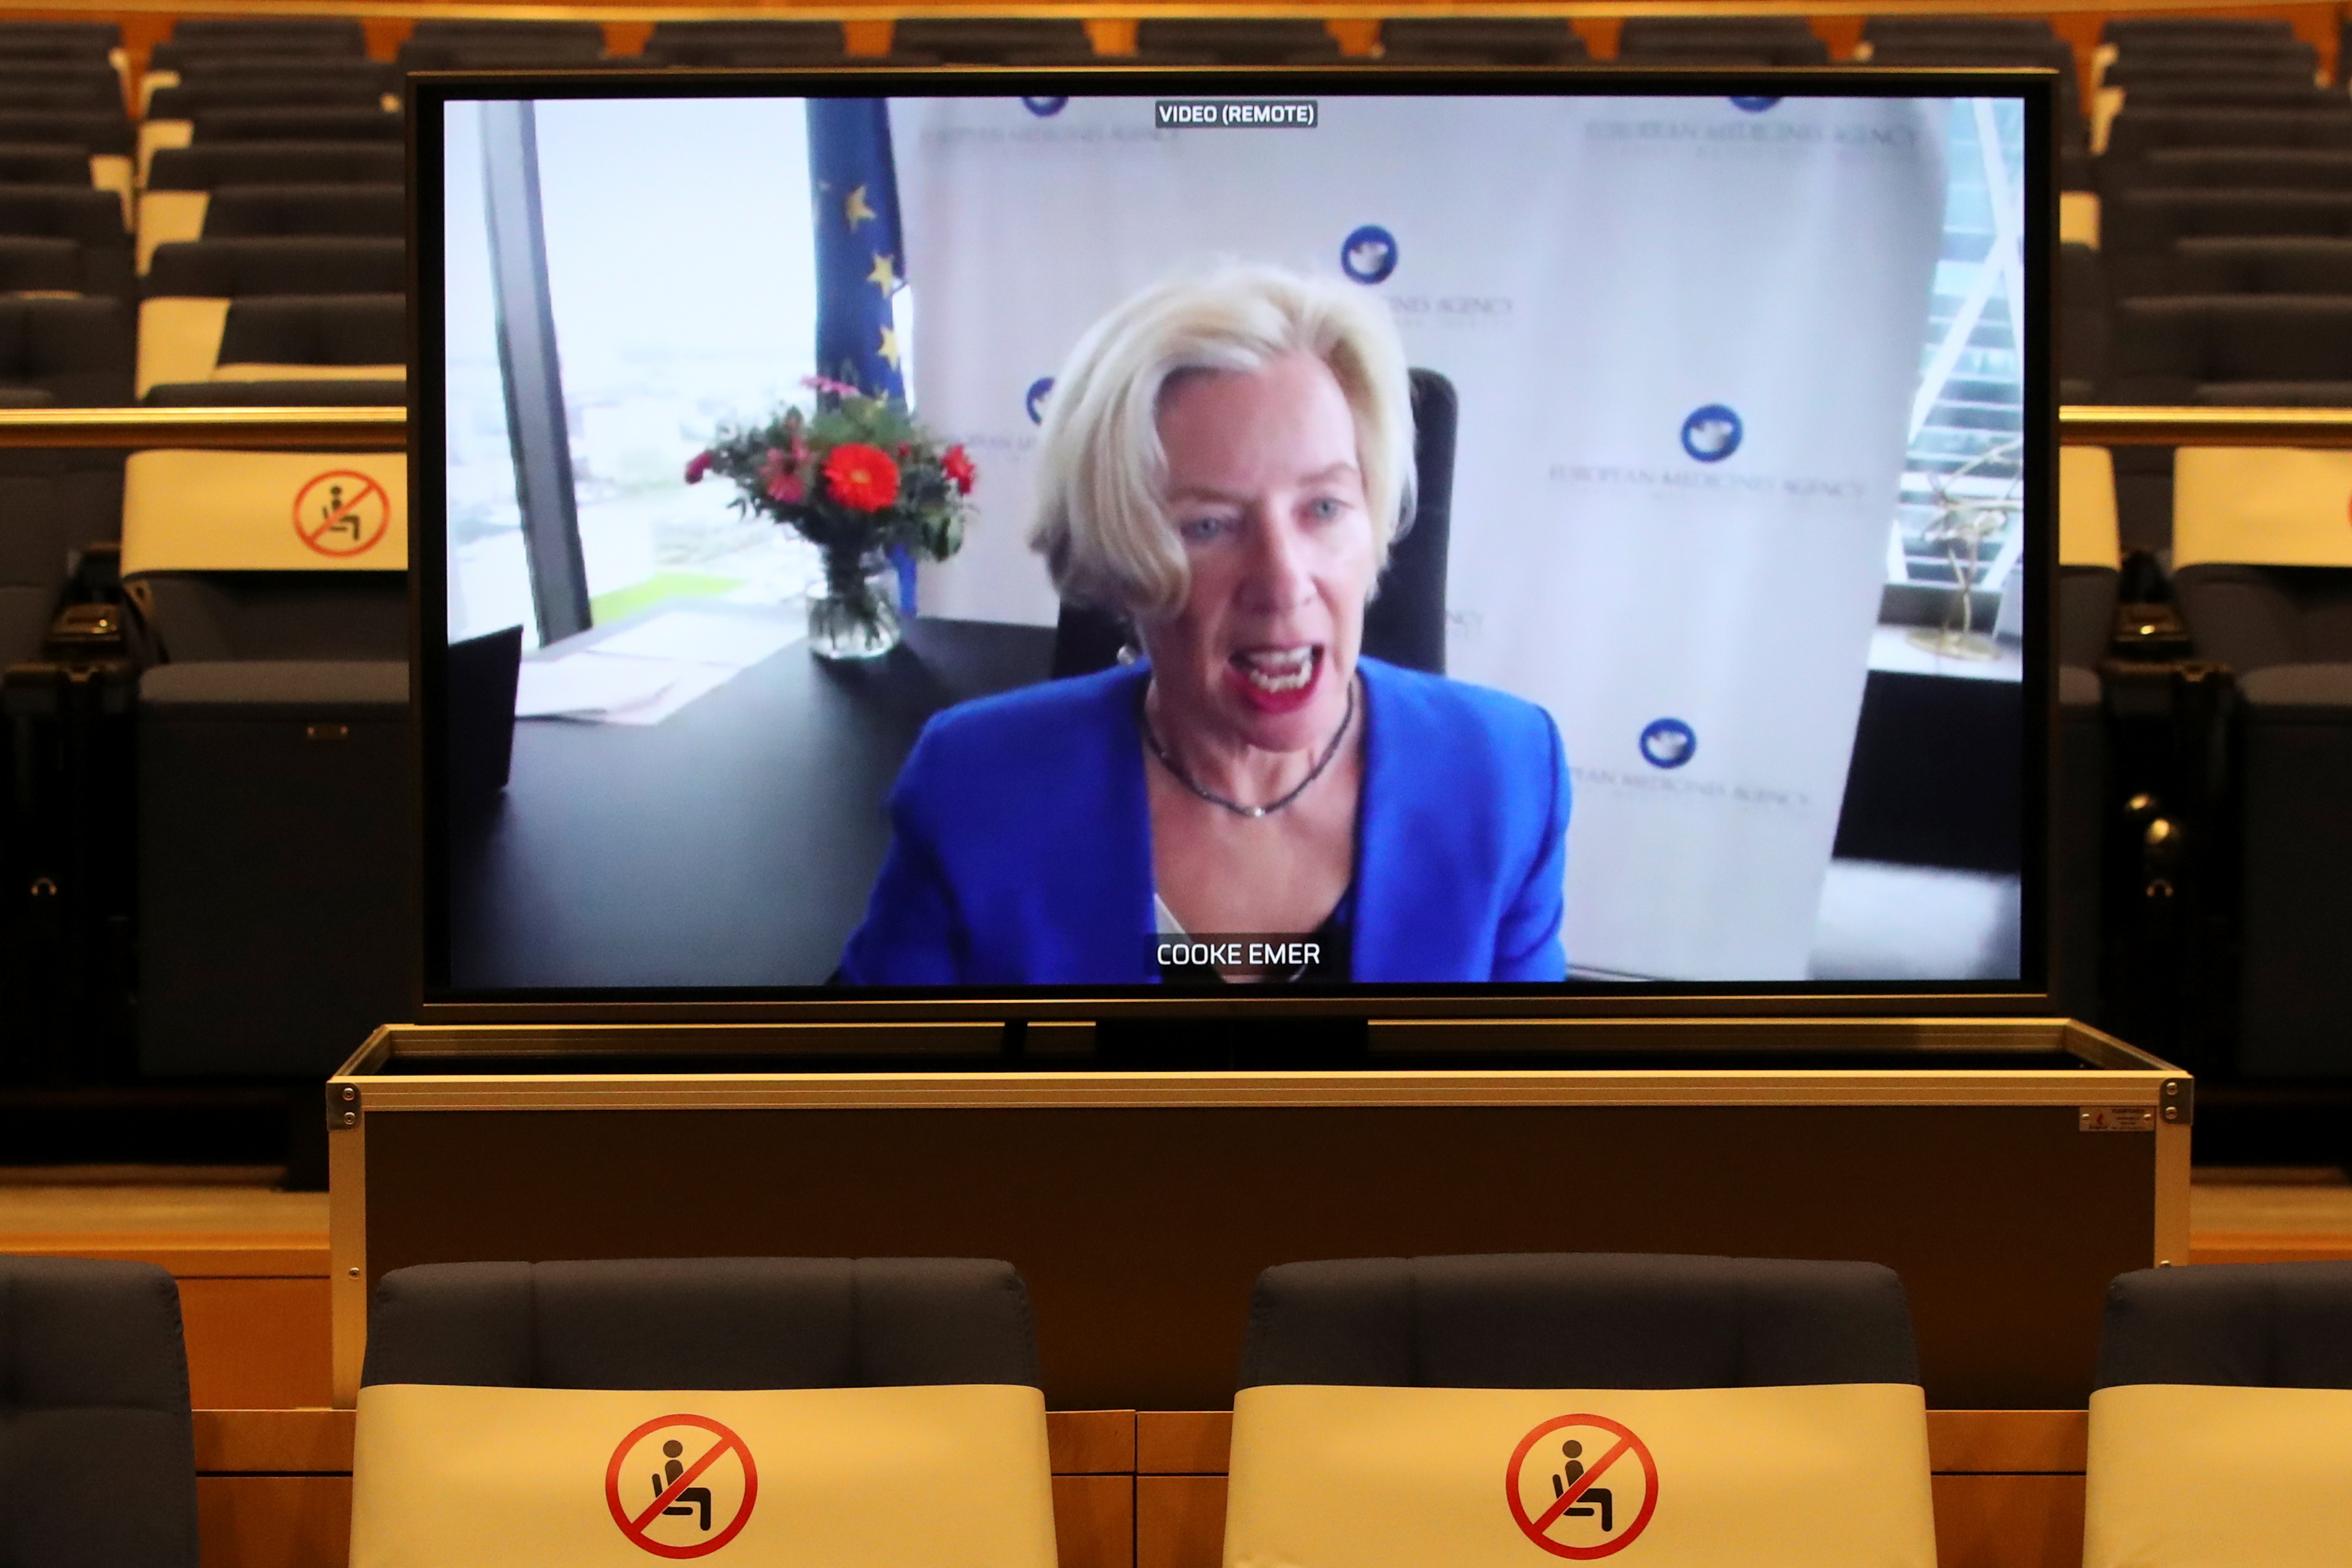 European Medicines Agency Executive Director, Emer Cooke, appears on screen during on videoconference in Brussels, Belgium March 16, 2021. REUTERS/Yves Herman/Pool